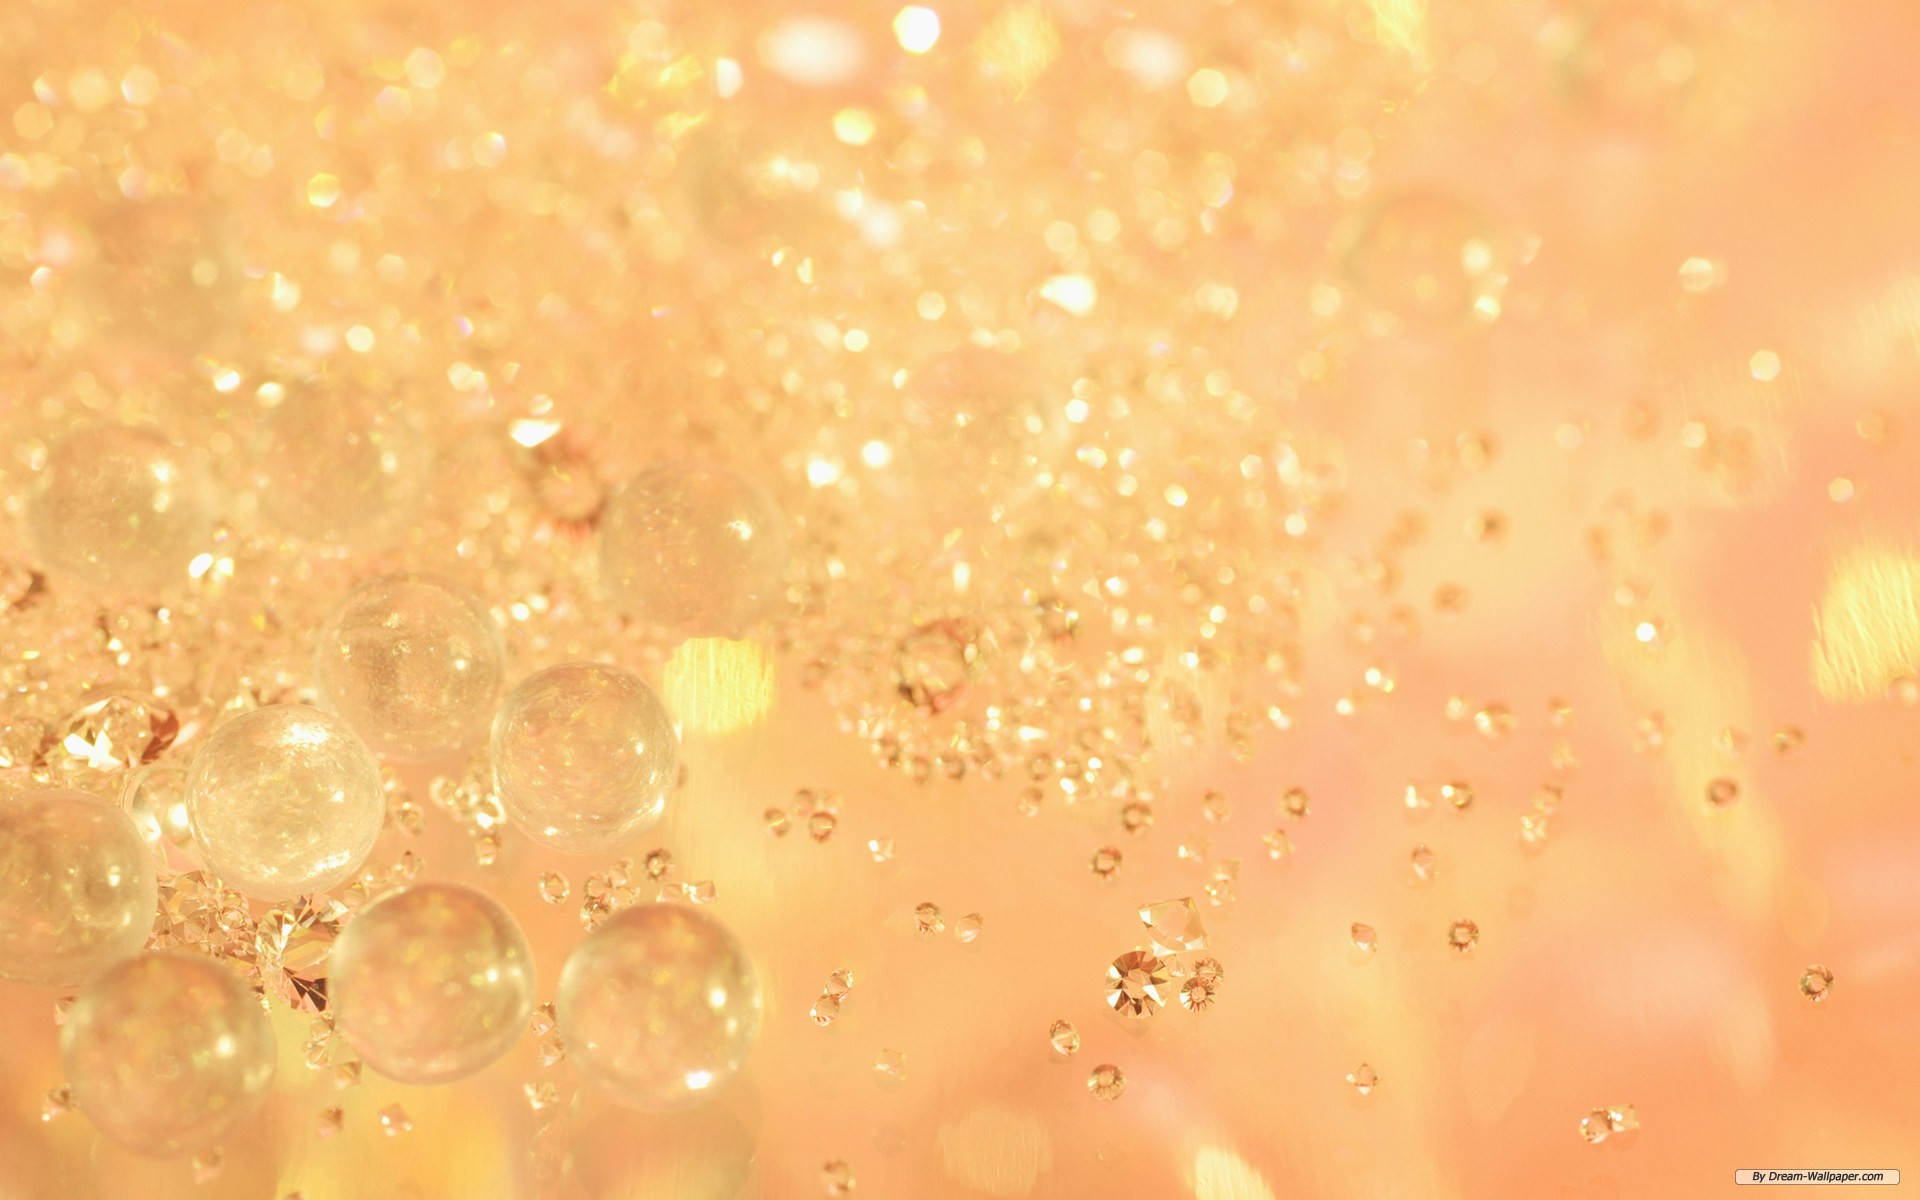 Sparkling wallpaper 1920x1200